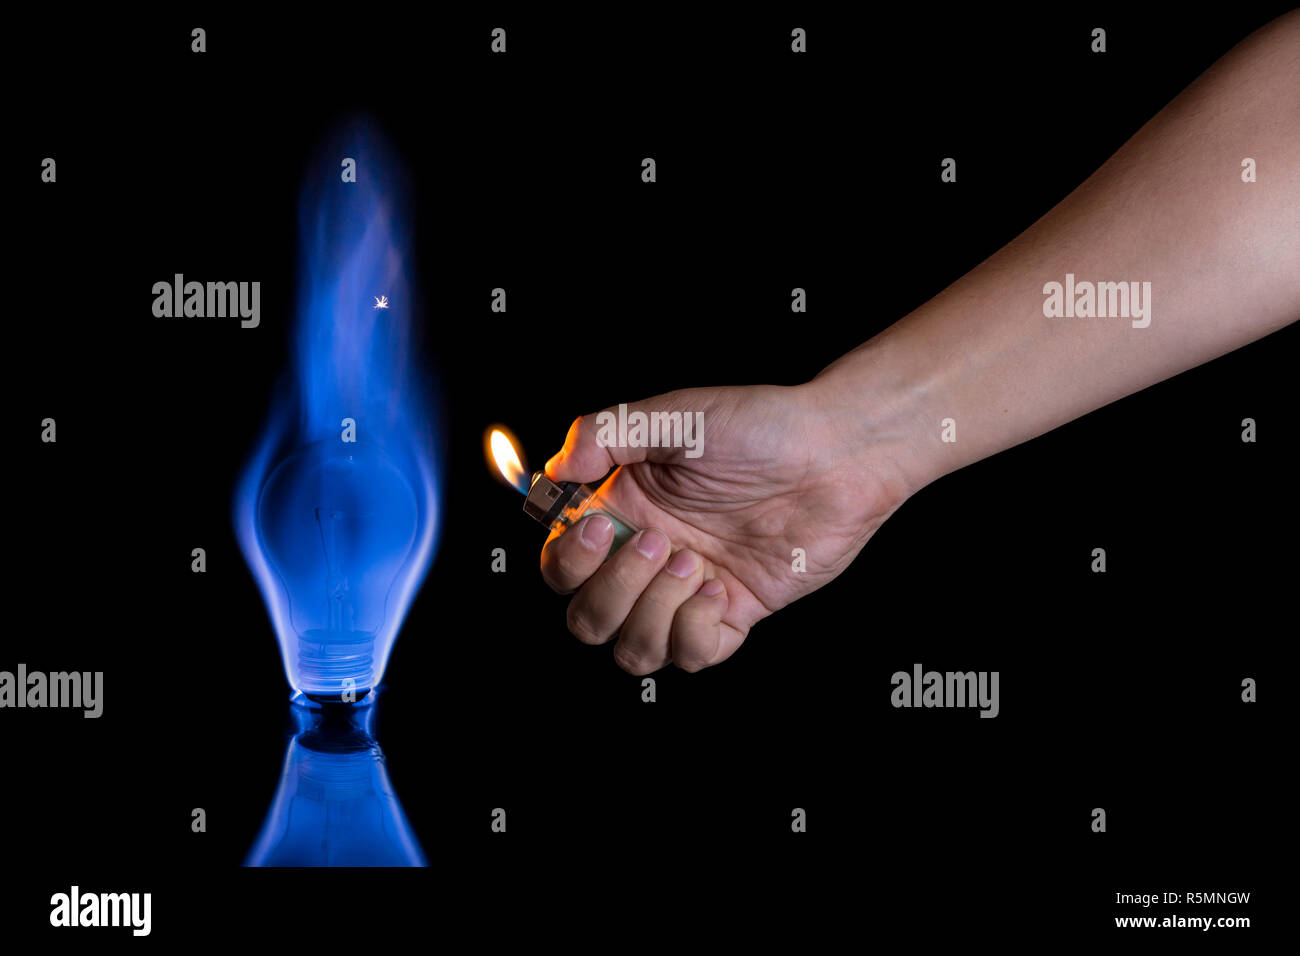 Hand lighting a lightbulb isolated on black background. Wrong usage concept. - Stock Image